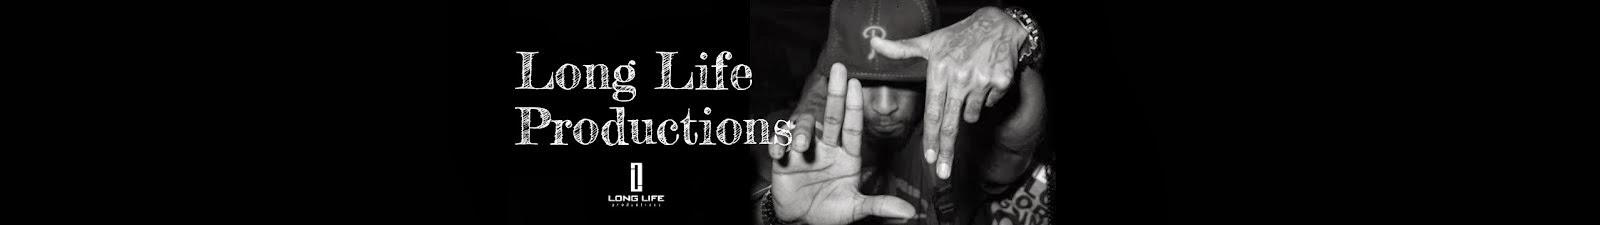 Long Life Productions Montreal VIDEO & EDITING